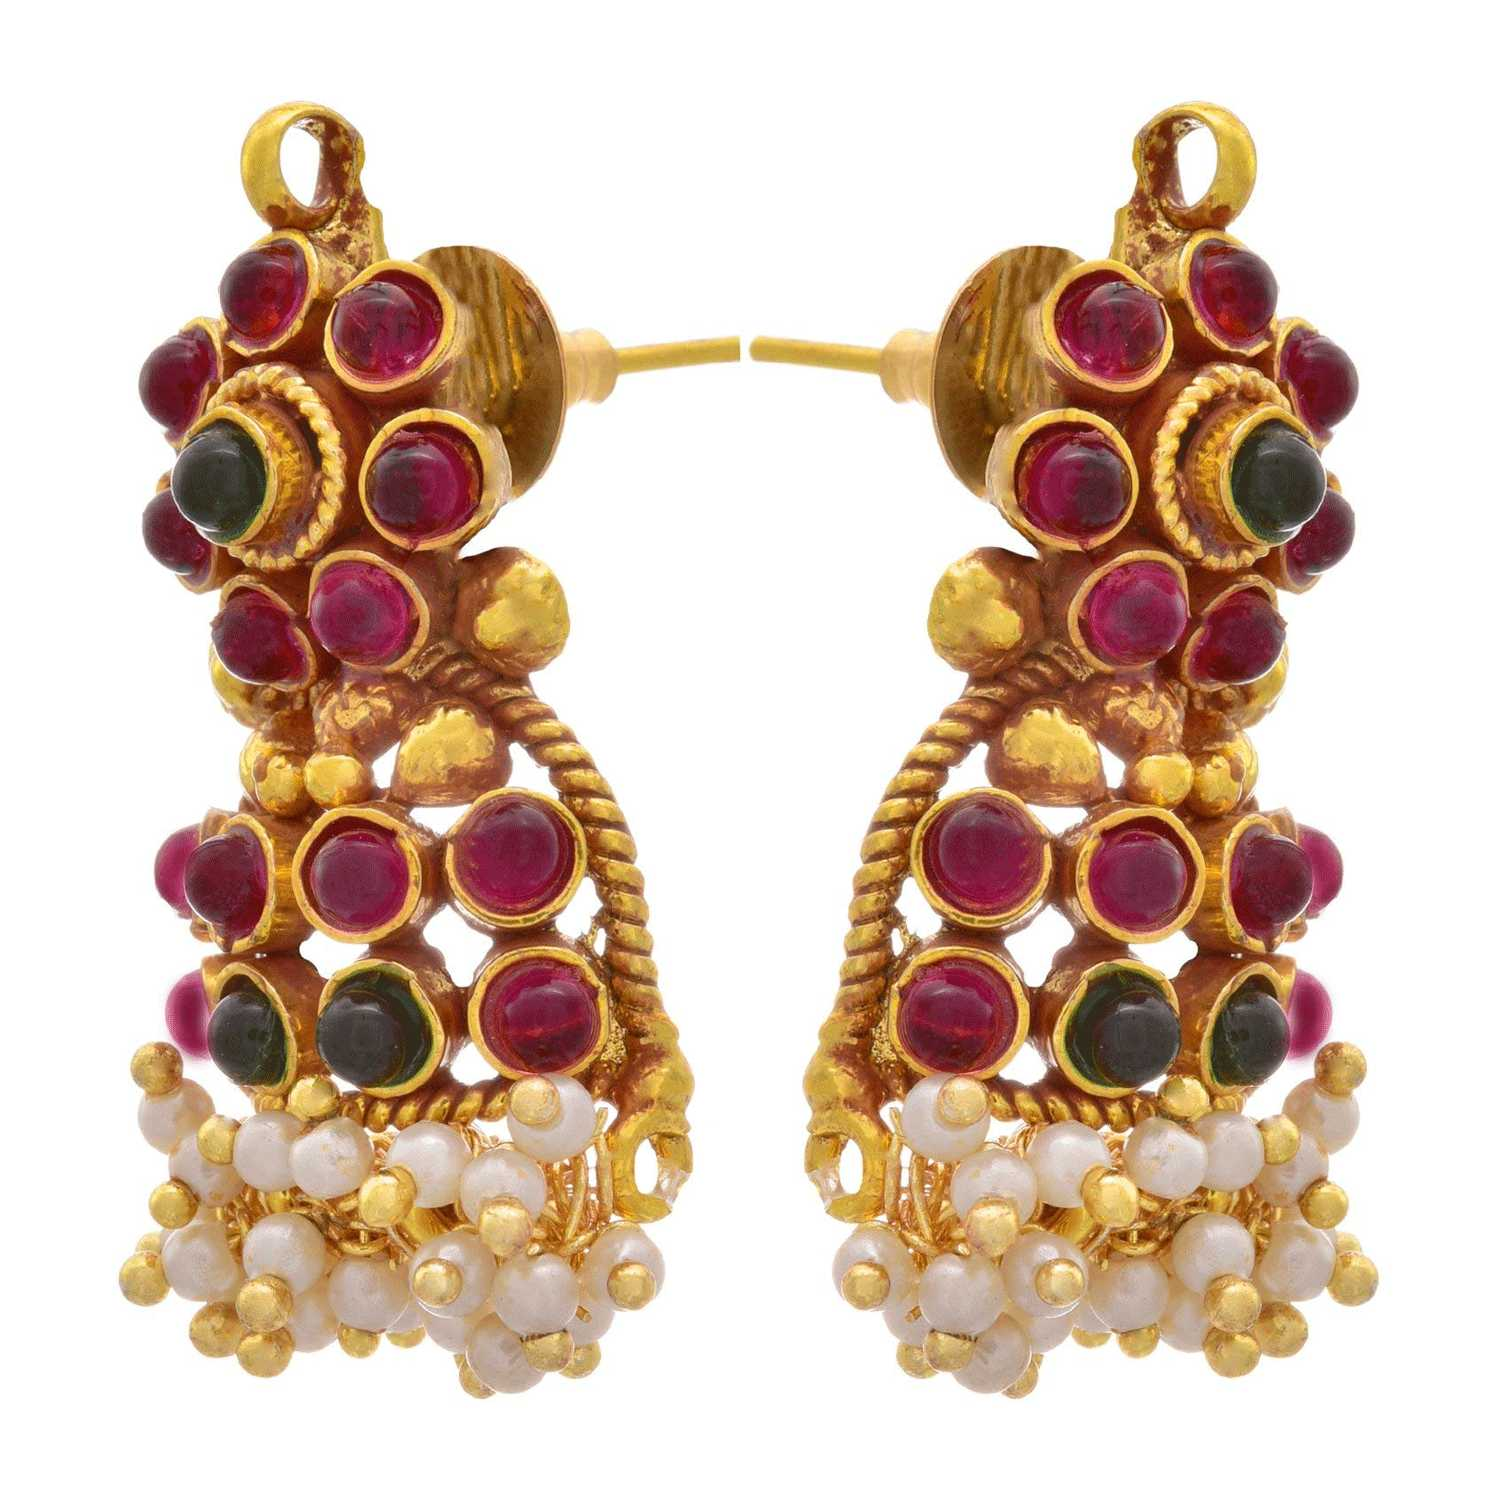 JFL - Traditional & Ethnic One Gram Gold Plated Red & Green Stone, Pearl Designer Pendant Set with Earring for Women & Girls